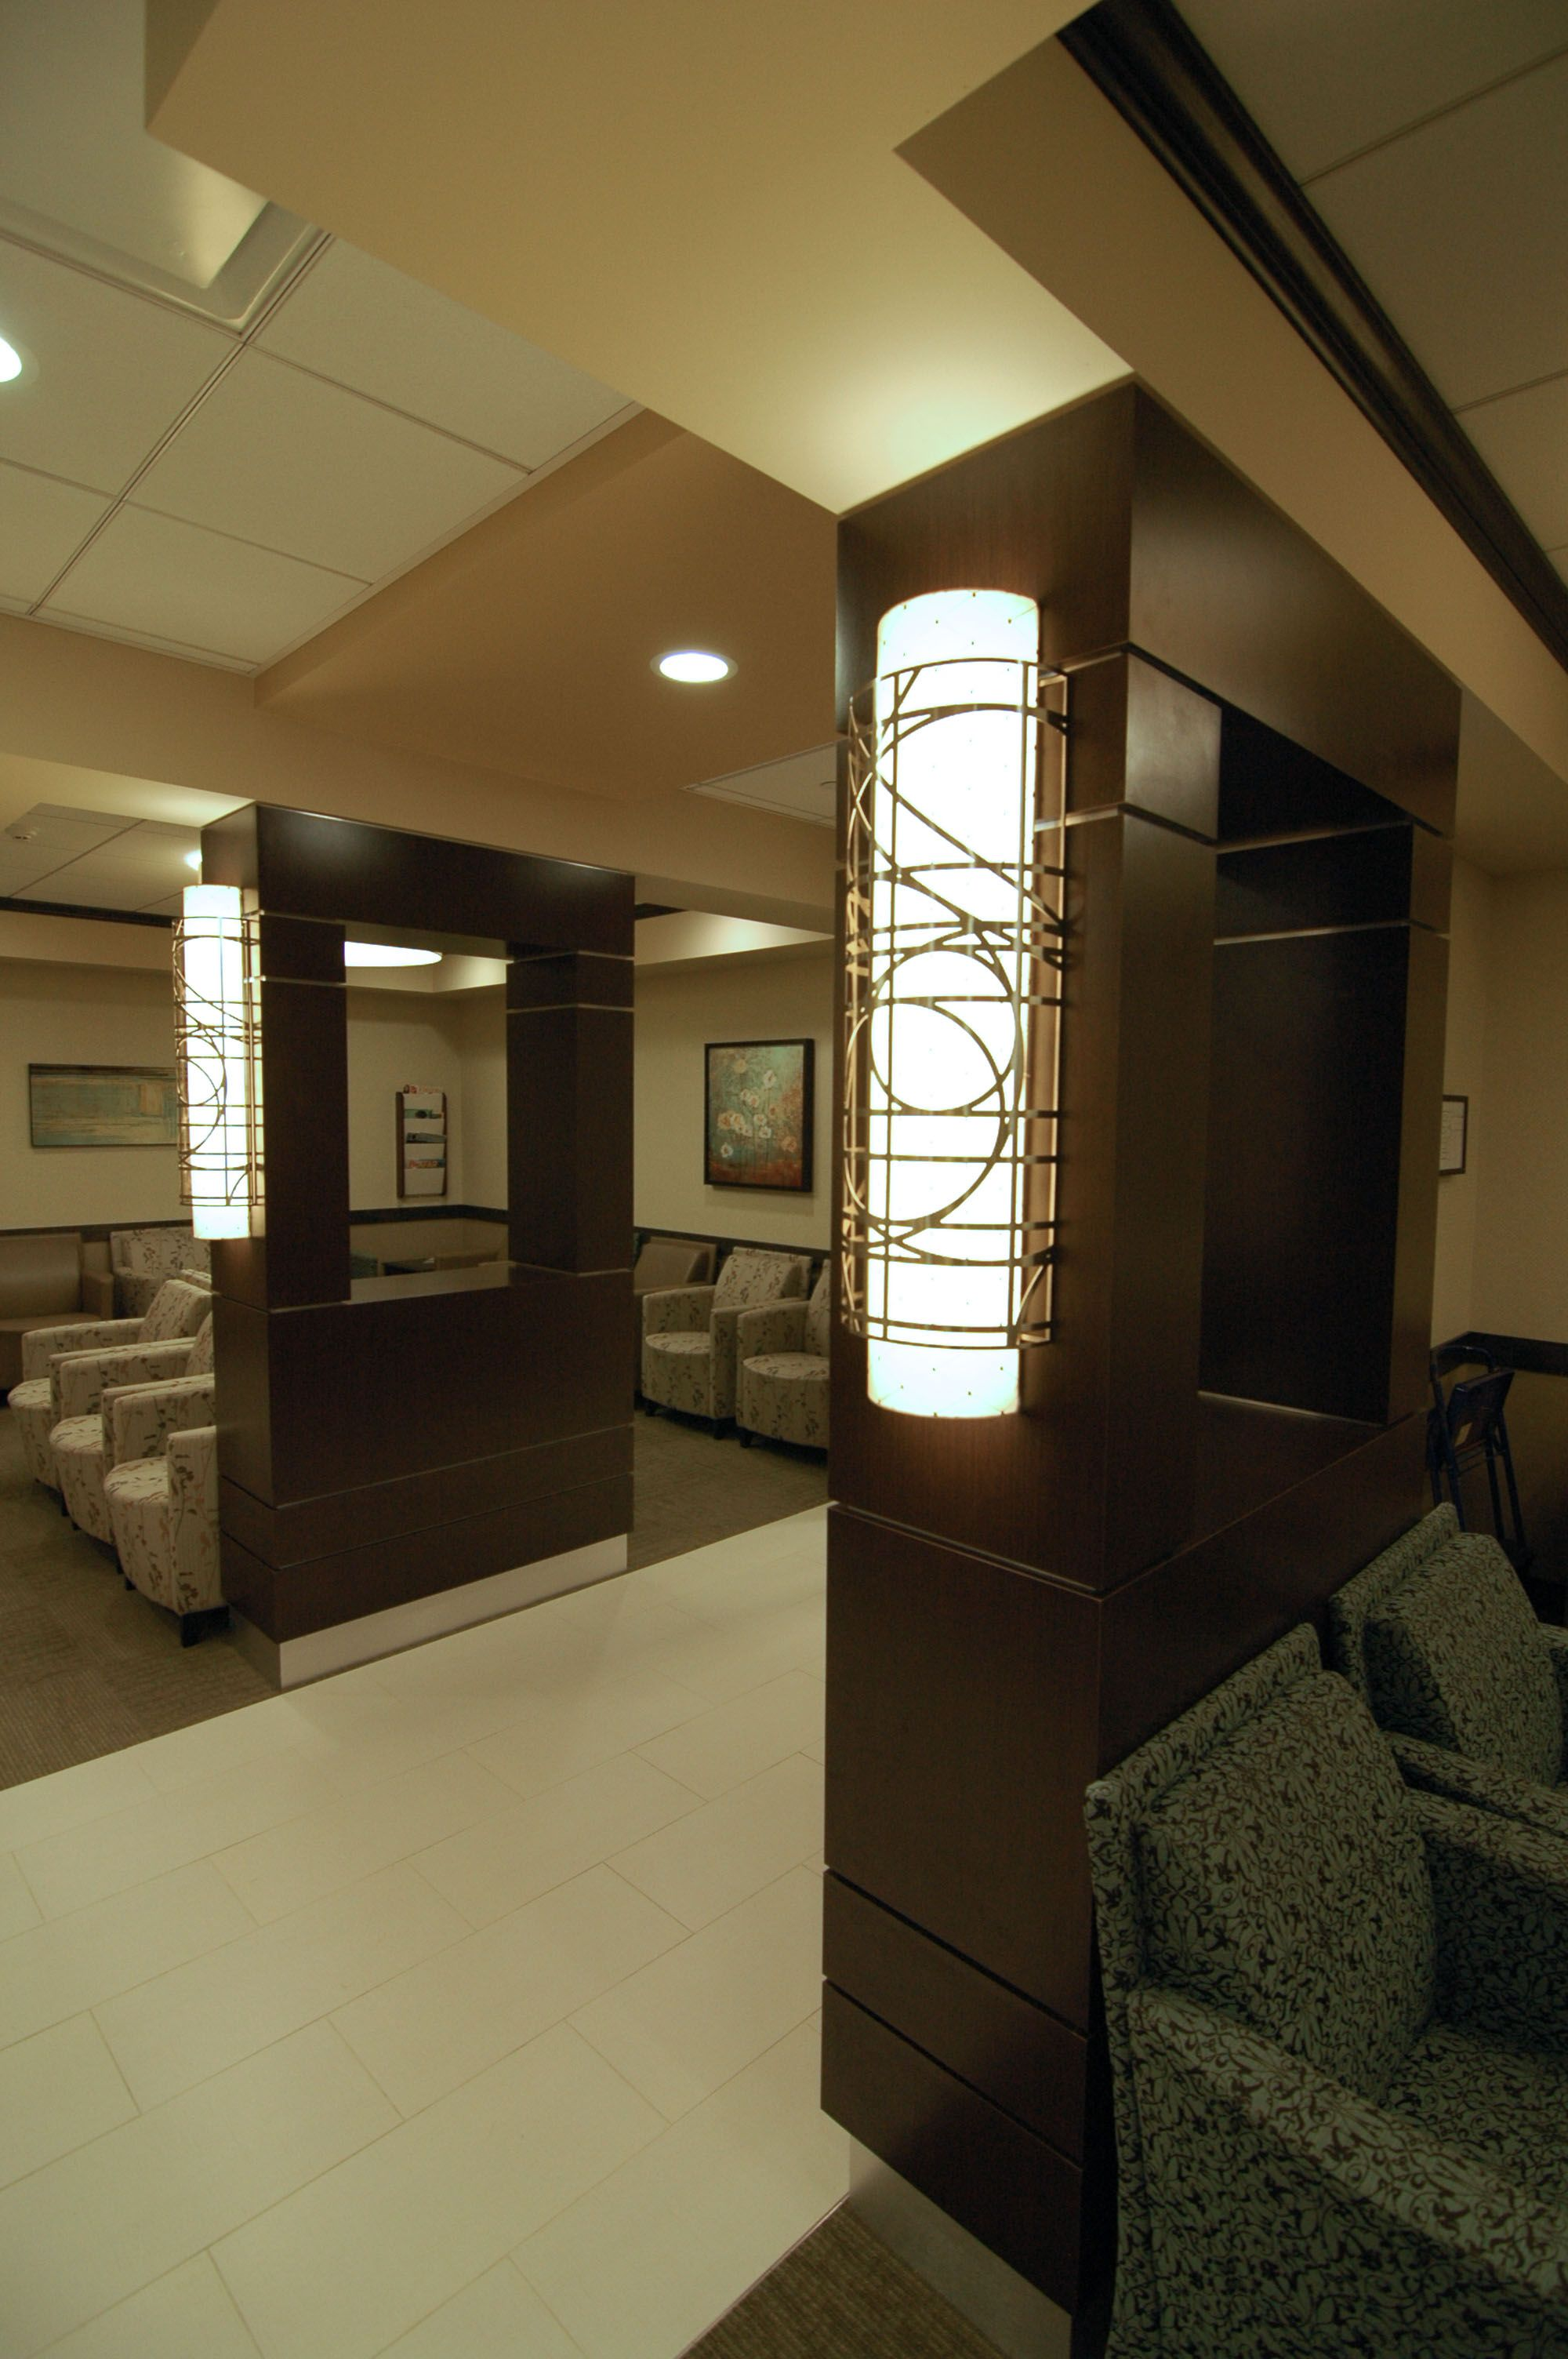 Room Lighting Design Software: Interior Medical Suite Built By Damianos Realty Group